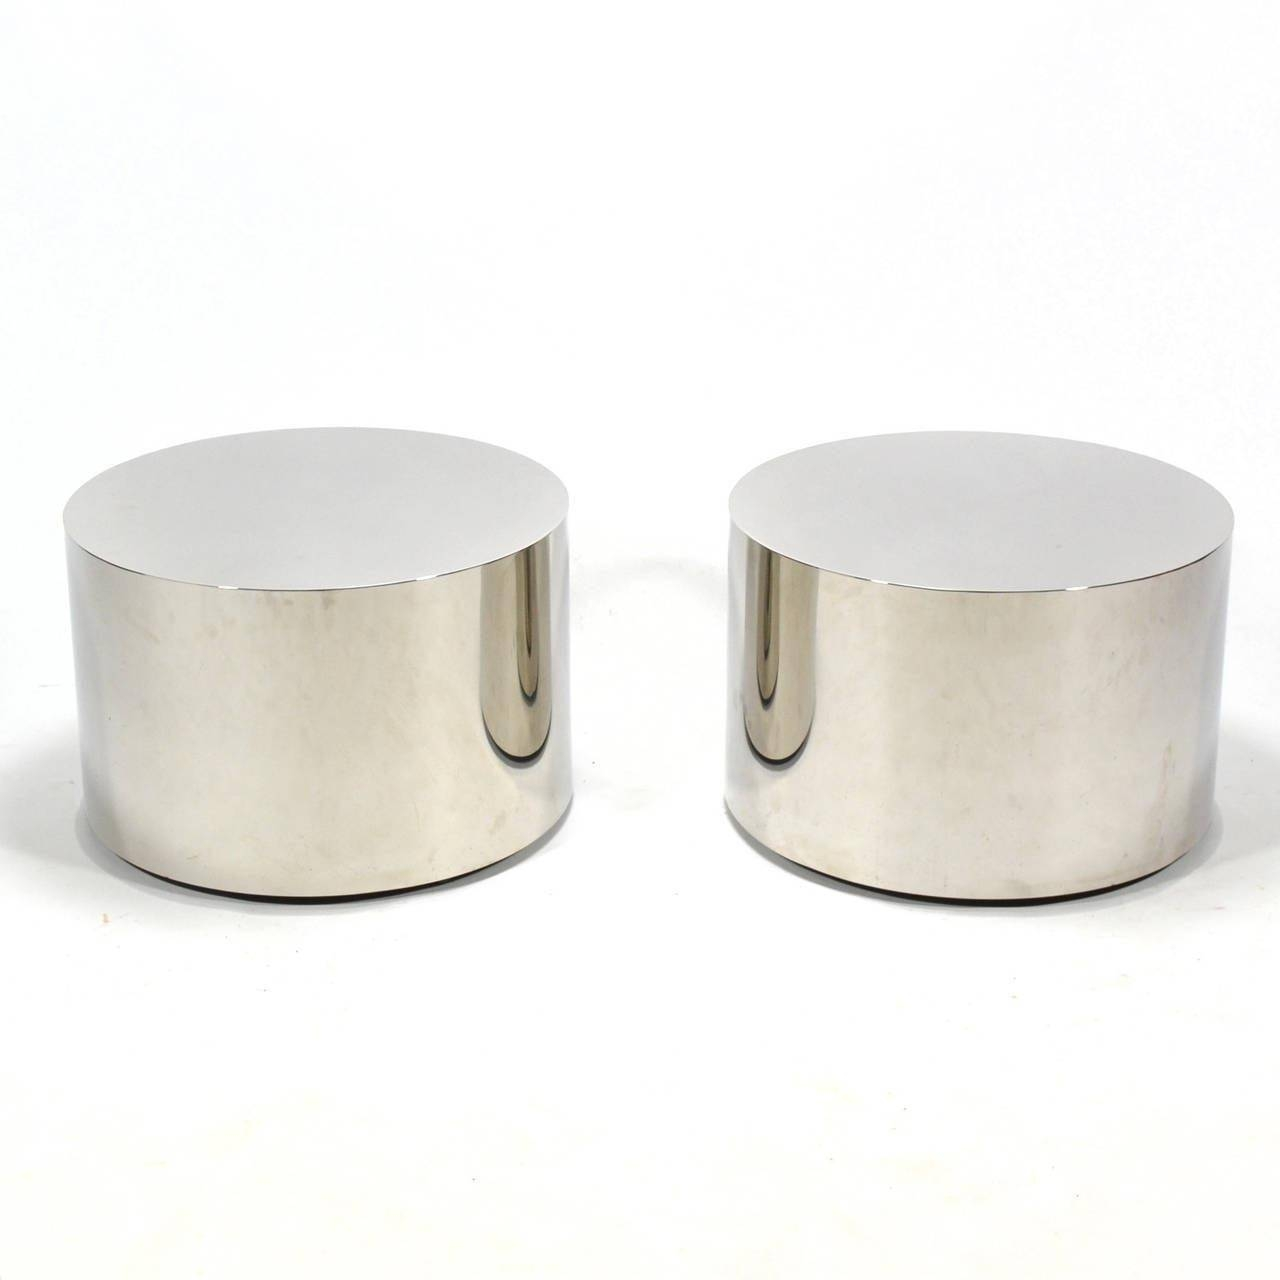 Stainless Steel Glass Coffee Table | Coffee Table Design Ideas throughout Silver Drum Coffee Tables (Image 30 of 30)